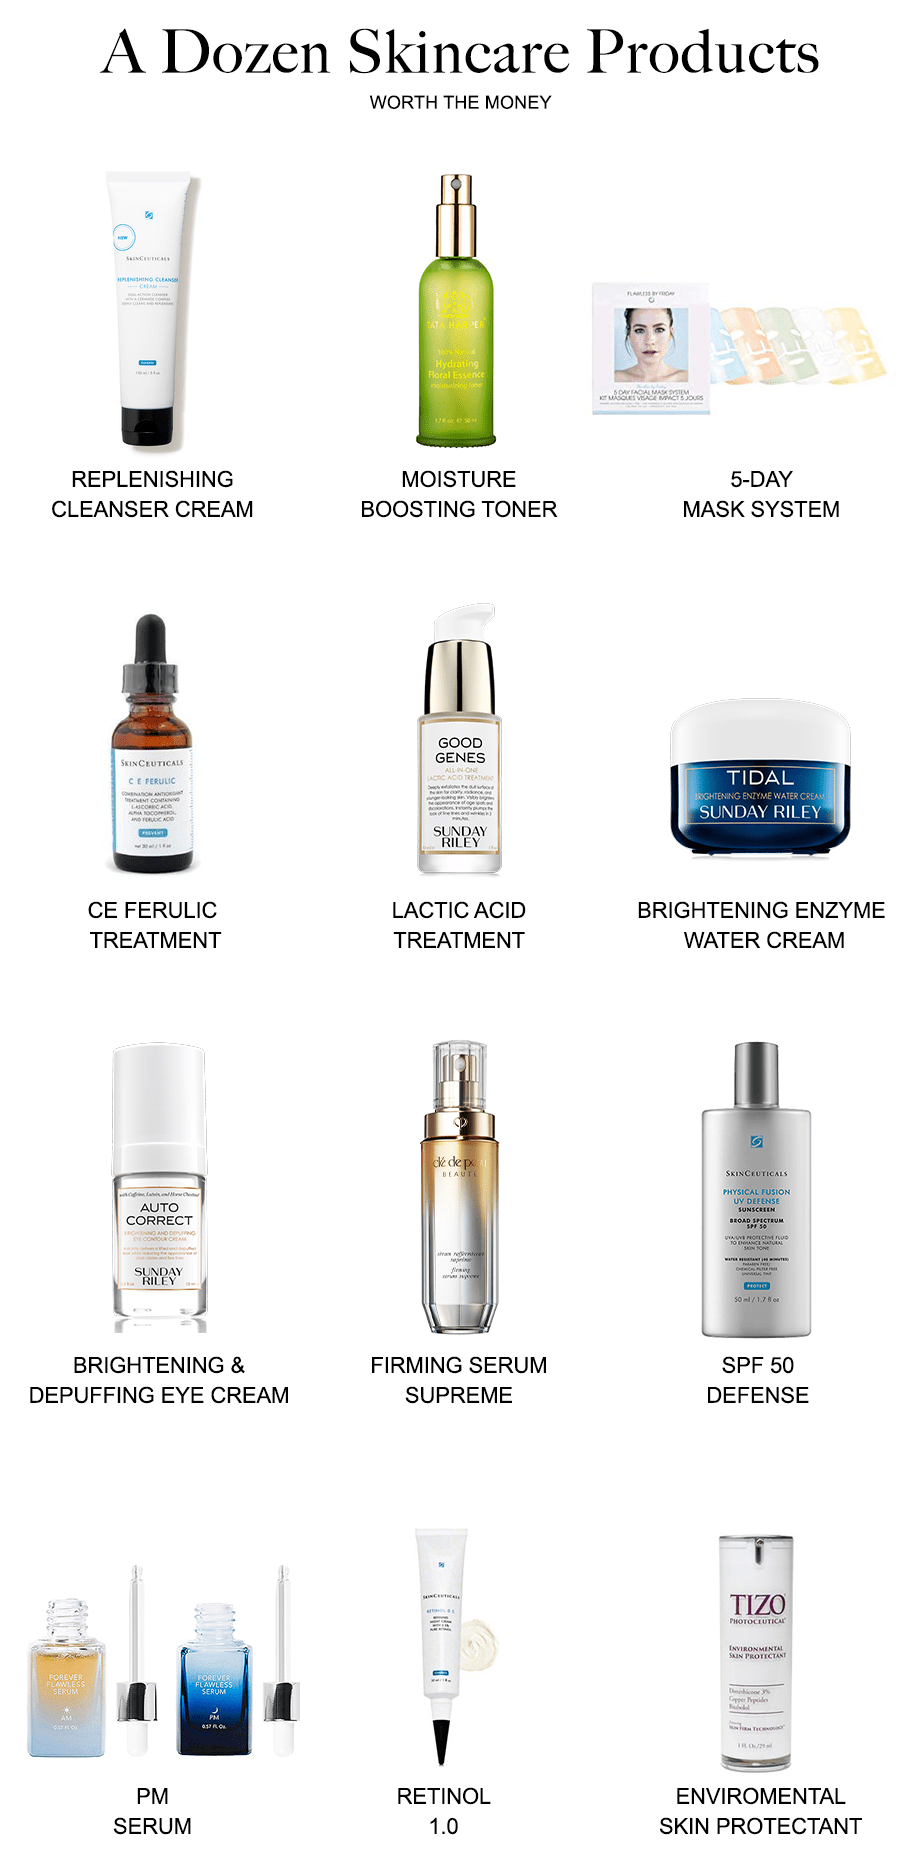 One dozen skincare products worth the money.